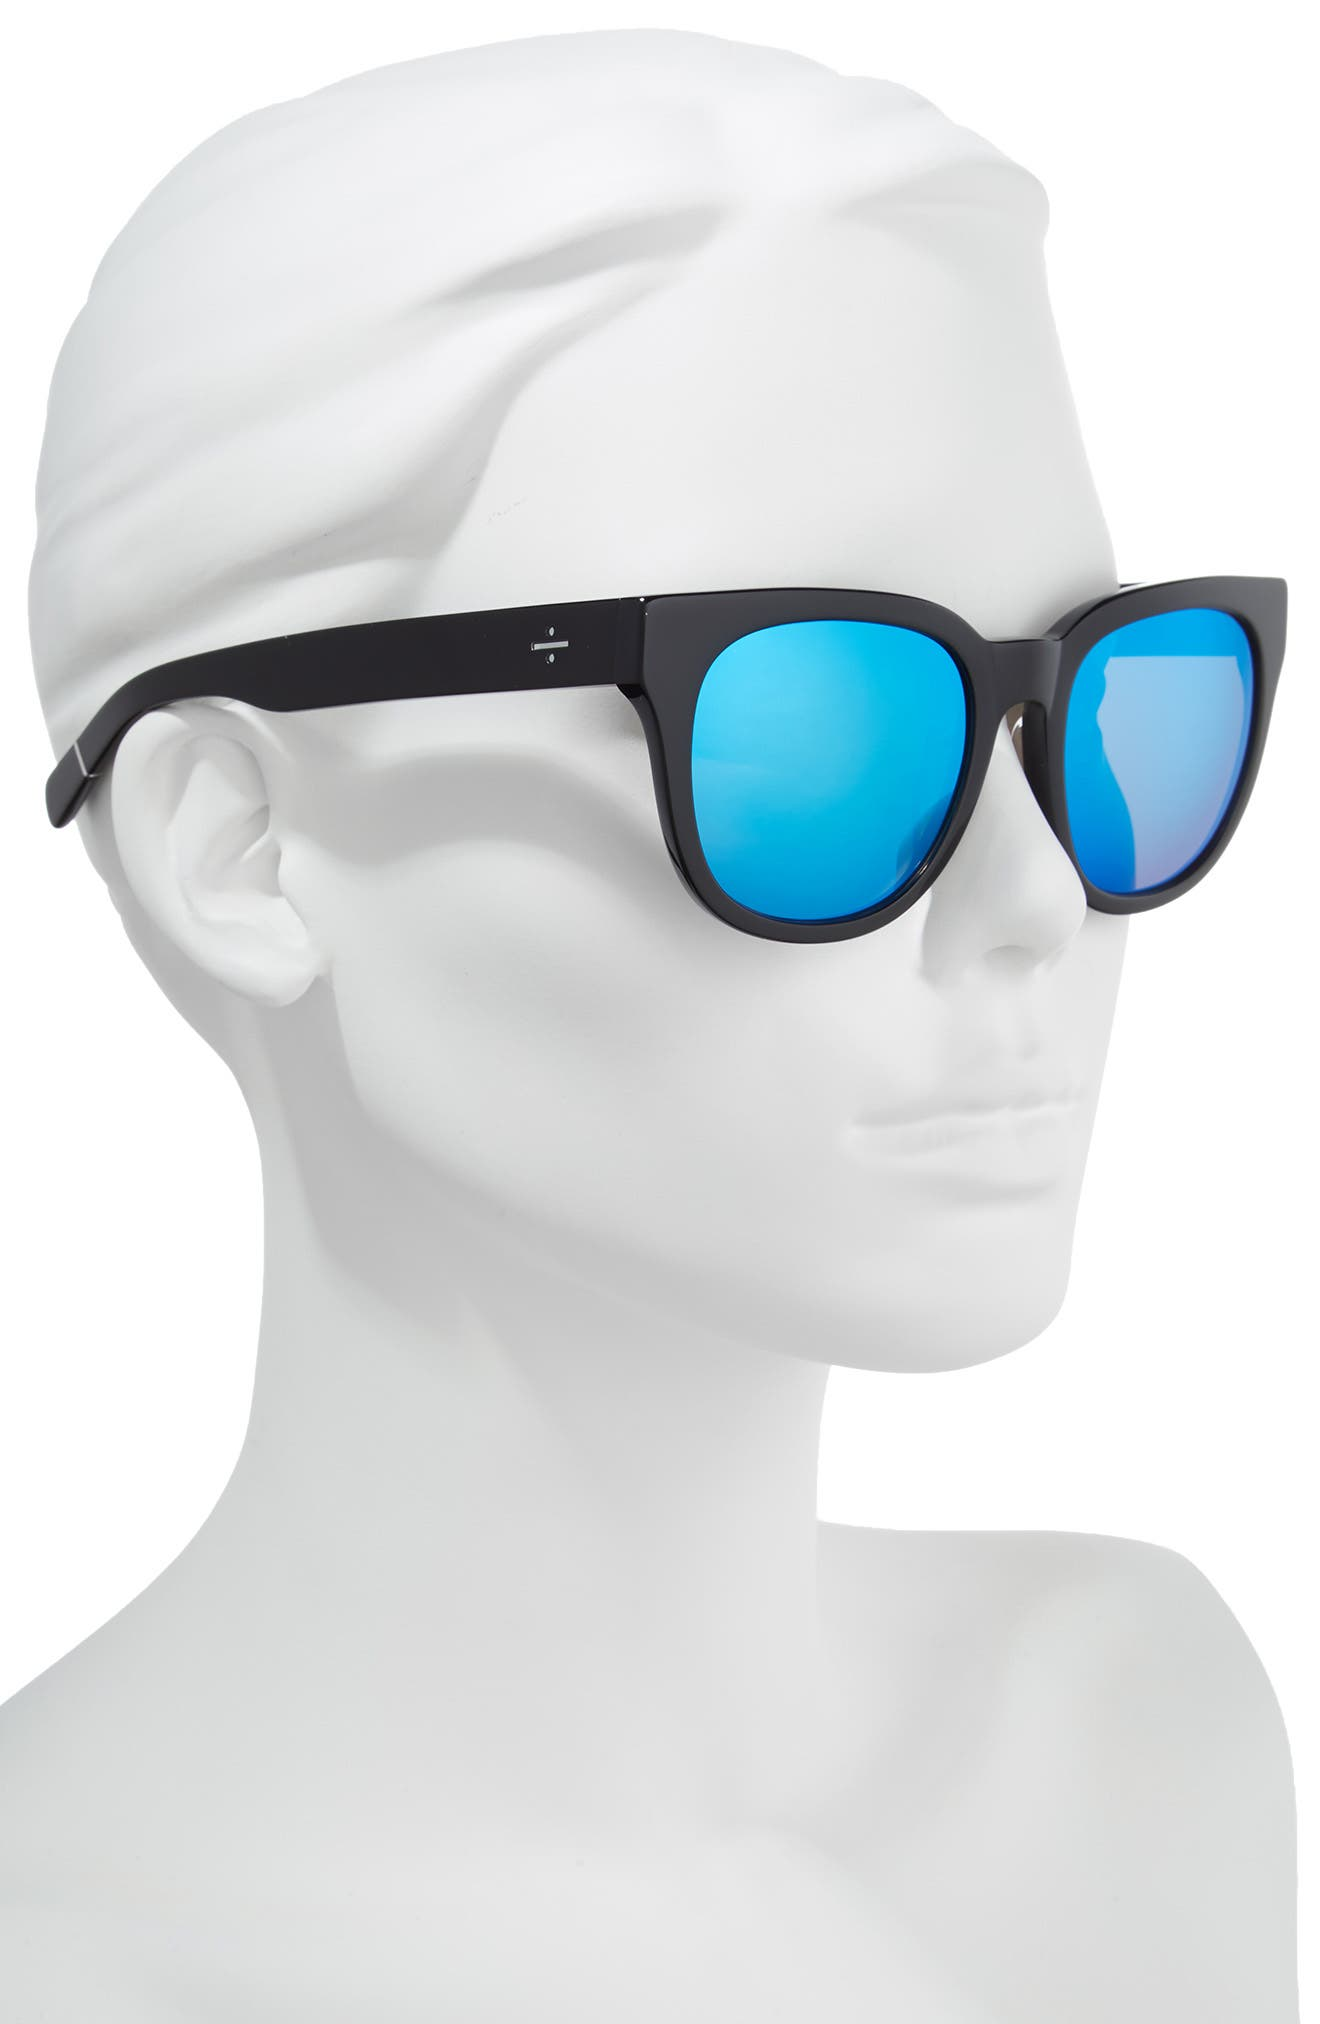 BLANC & ECLARE Seoul 55mm Polarized Sunglasses,                             Alternate thumbnail 2, color,                             Black/ Blue Mirror